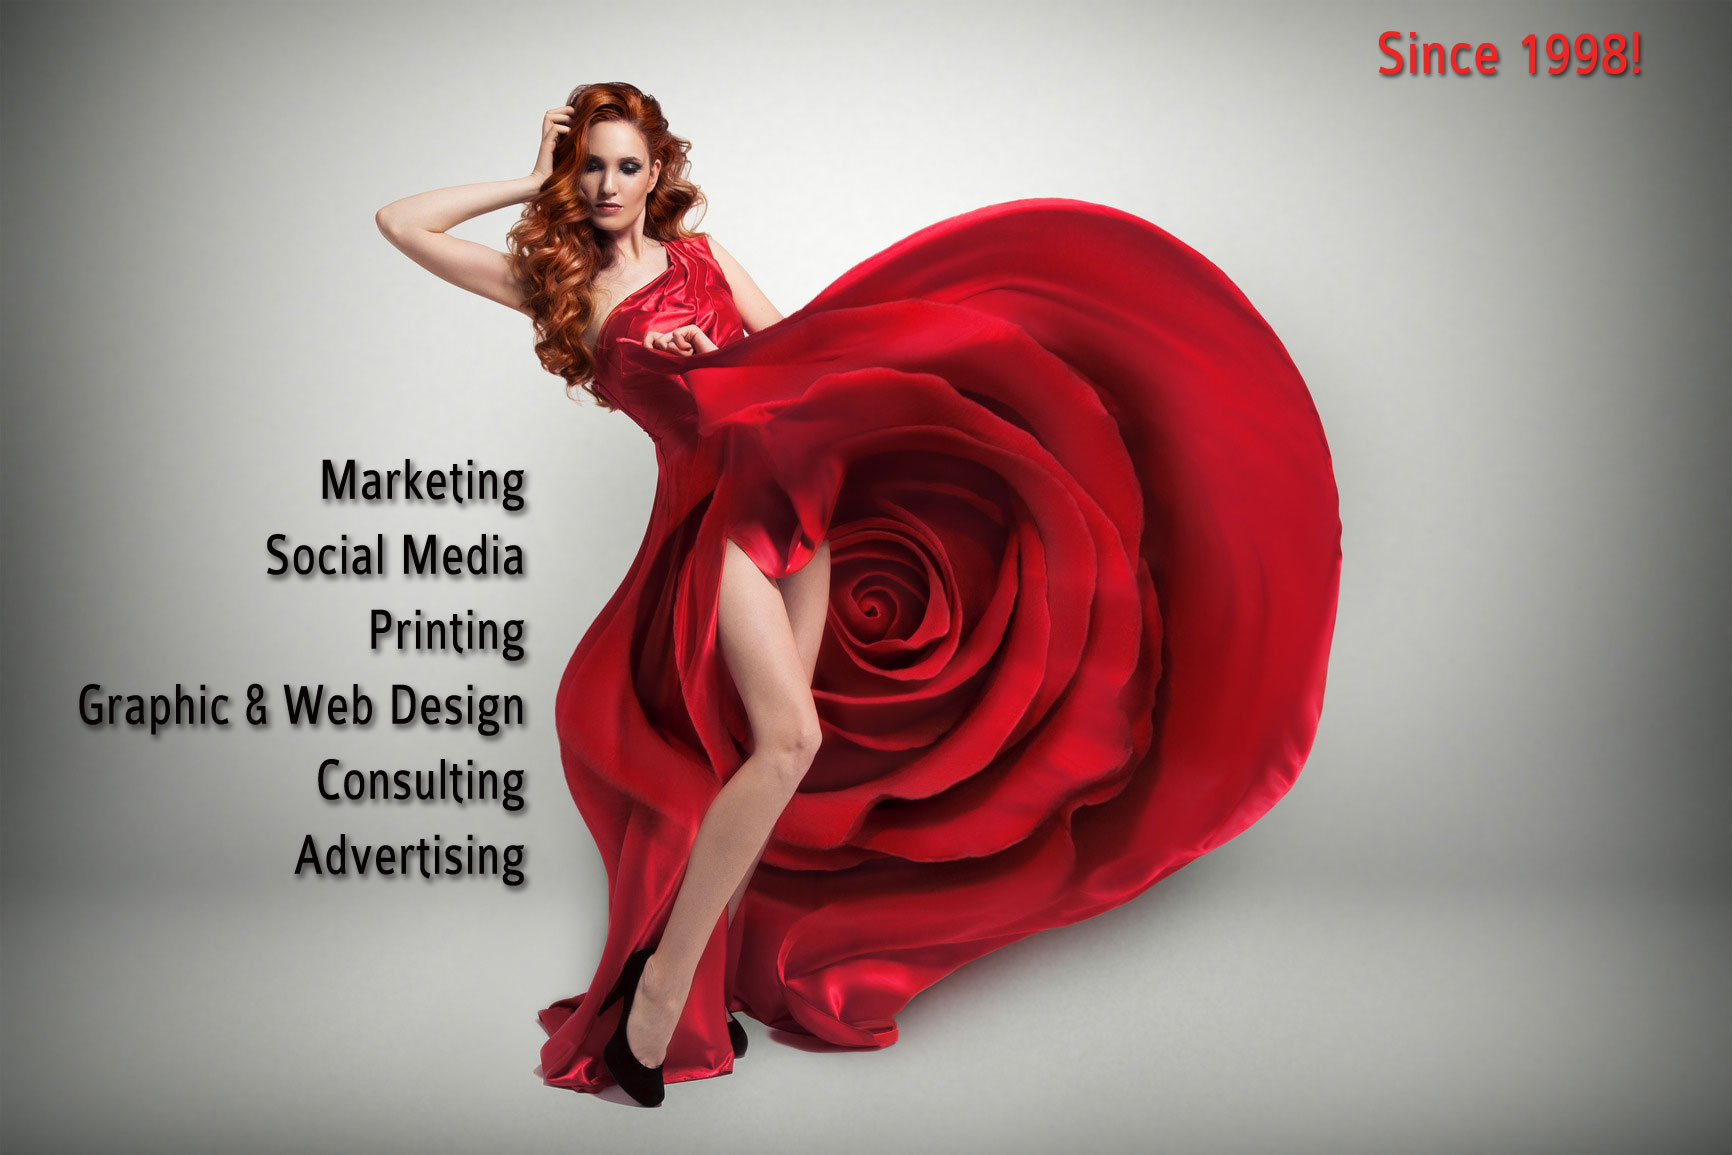 Marketing | Social Media | Printing | Graphic & Web Design | Consulting | Advertising